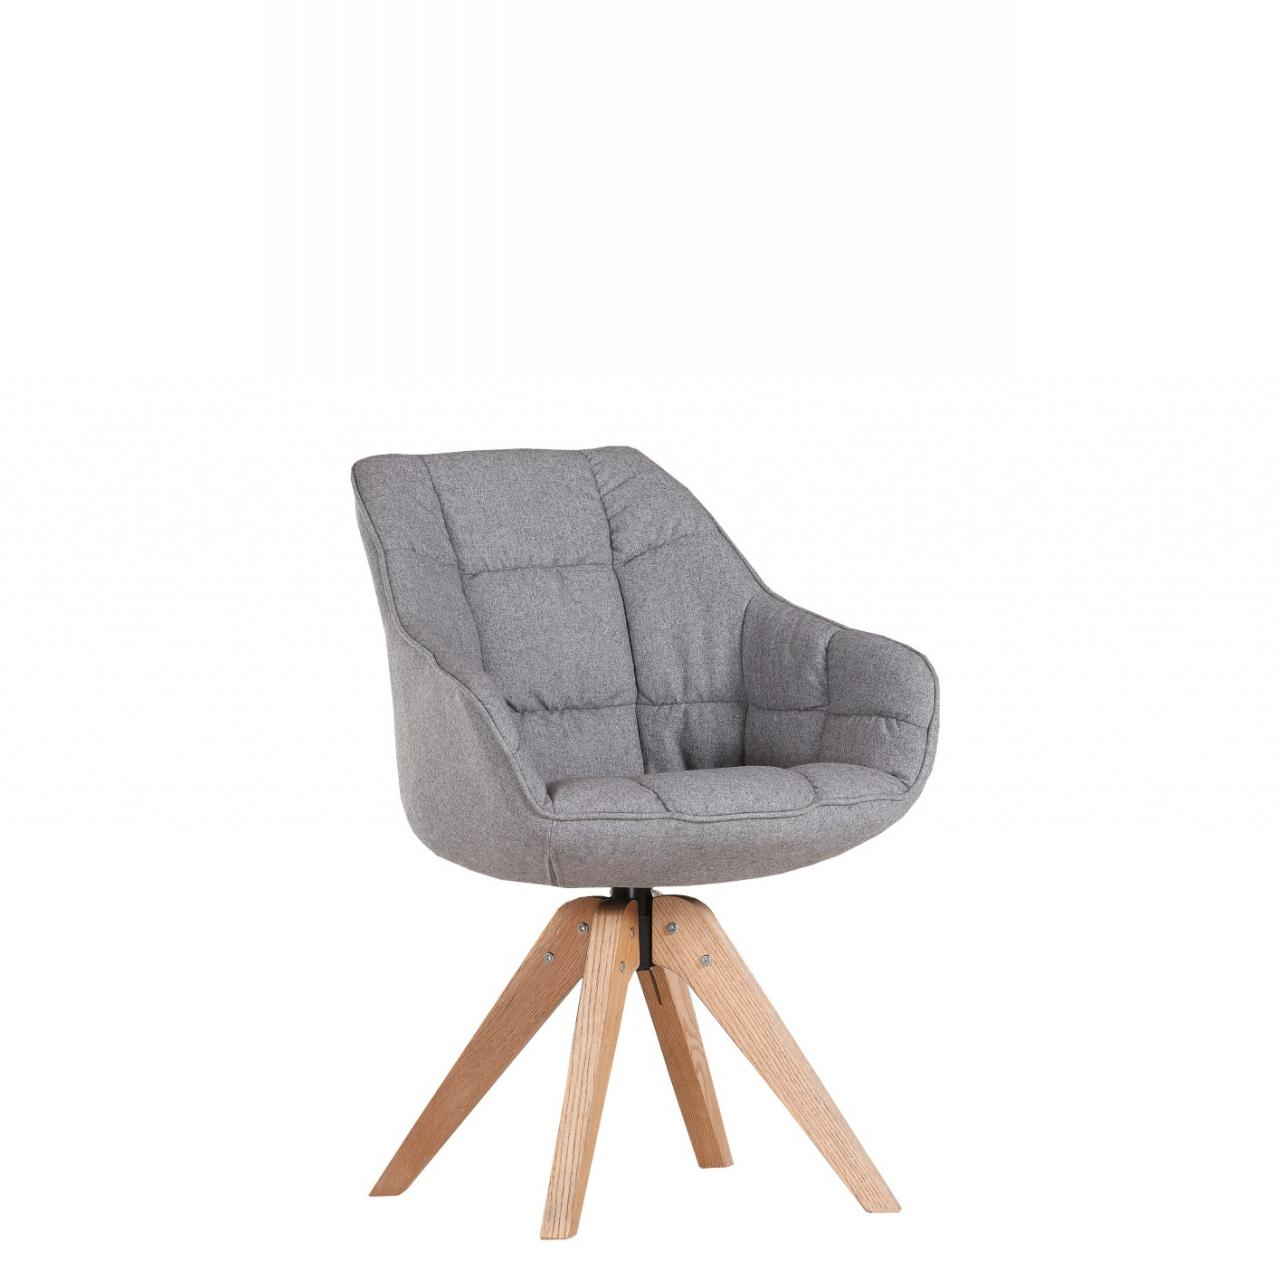 Chill Sessel Chill Sessel Sessel Grau Chill Chill Out E H Meyer